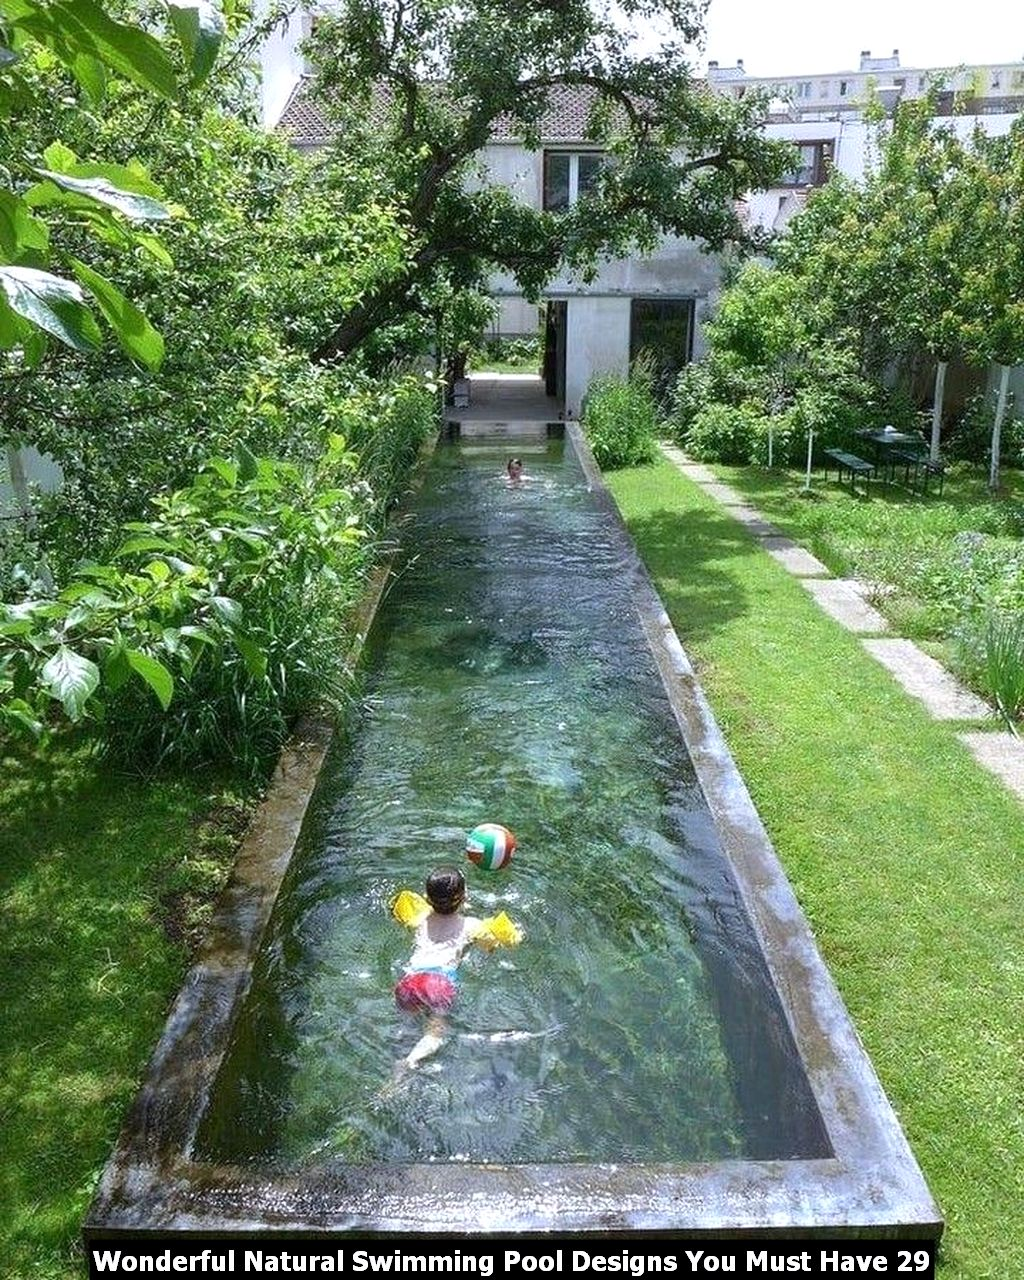 Wonderful Natural Swimming Pool Designs You Must Have 29